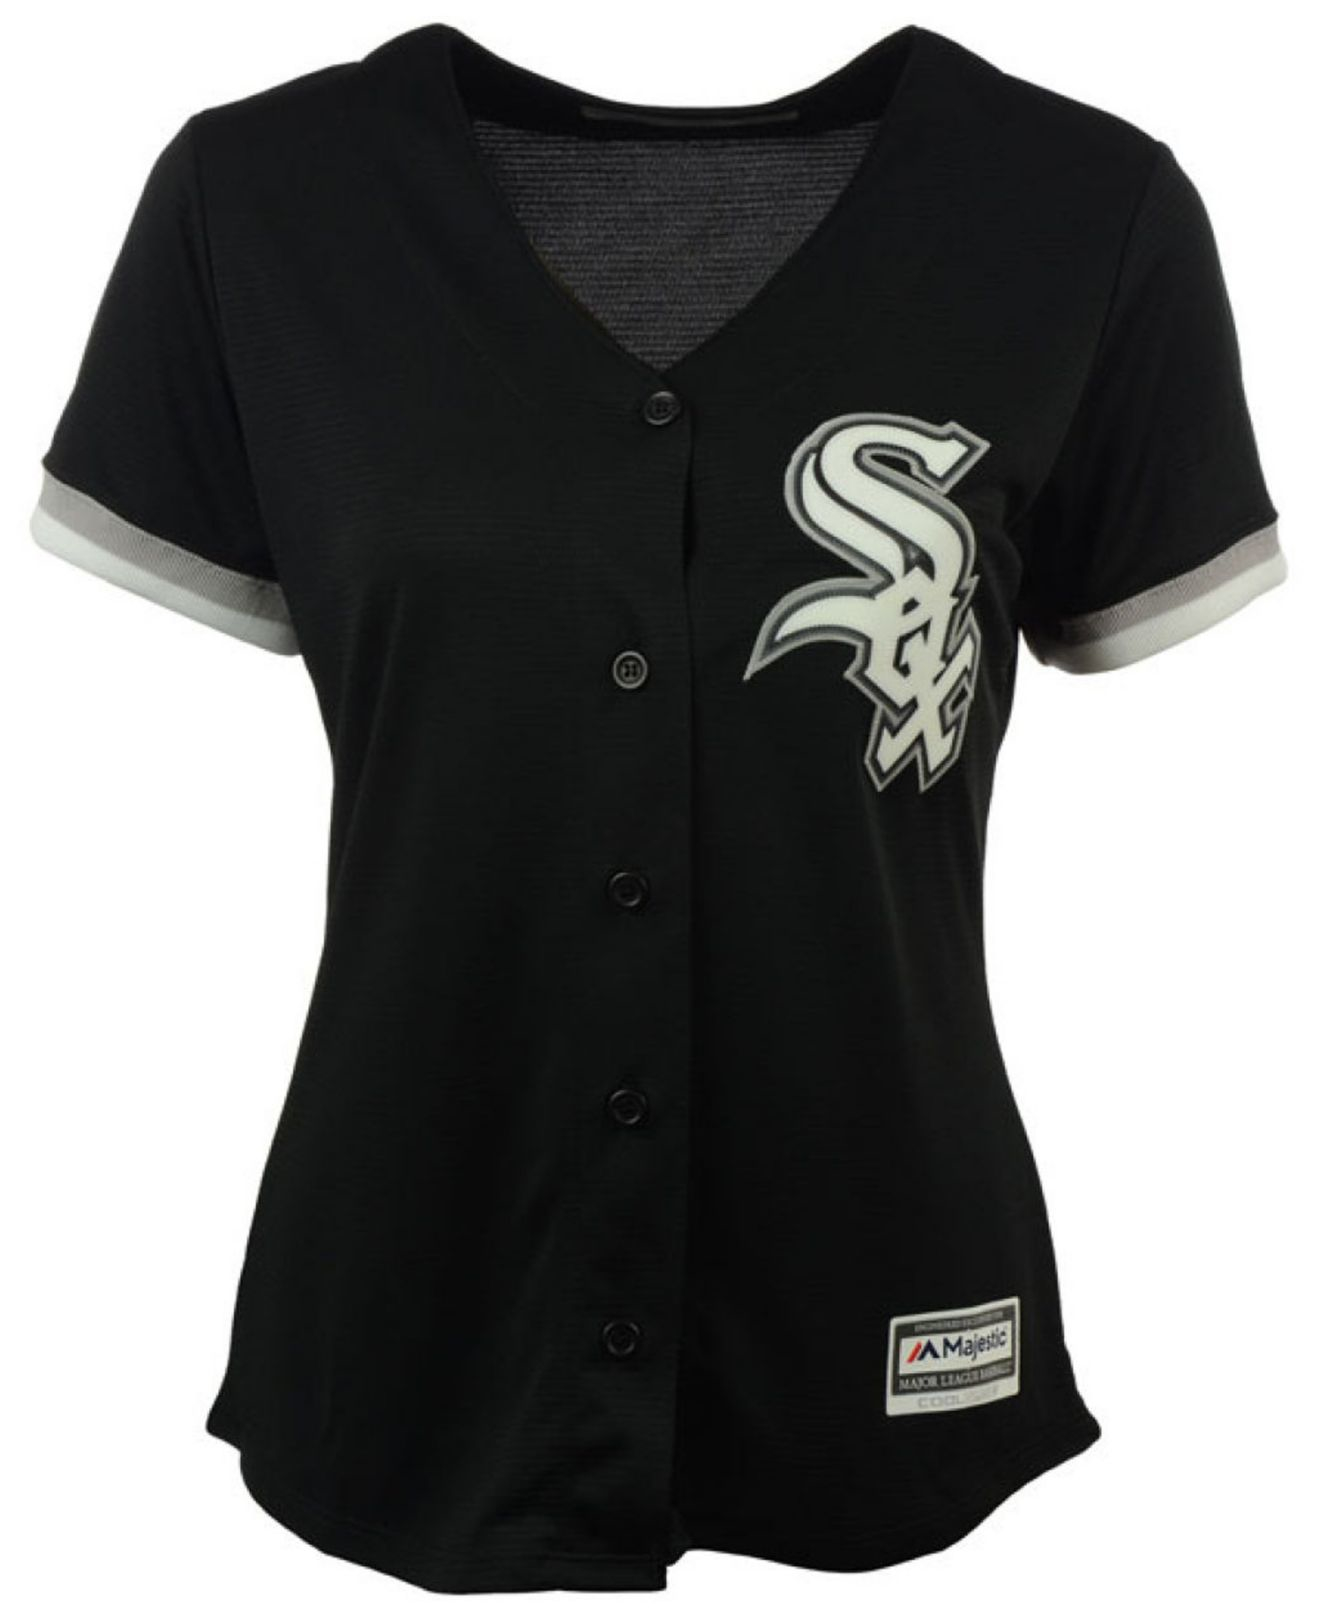 majestic black single women Majestic colorado rockies women's black 2018 players' weekend v-neck t-shirt is available now at fansedge enjoy fast shipping and easy returns on all orders of [[product_name]].